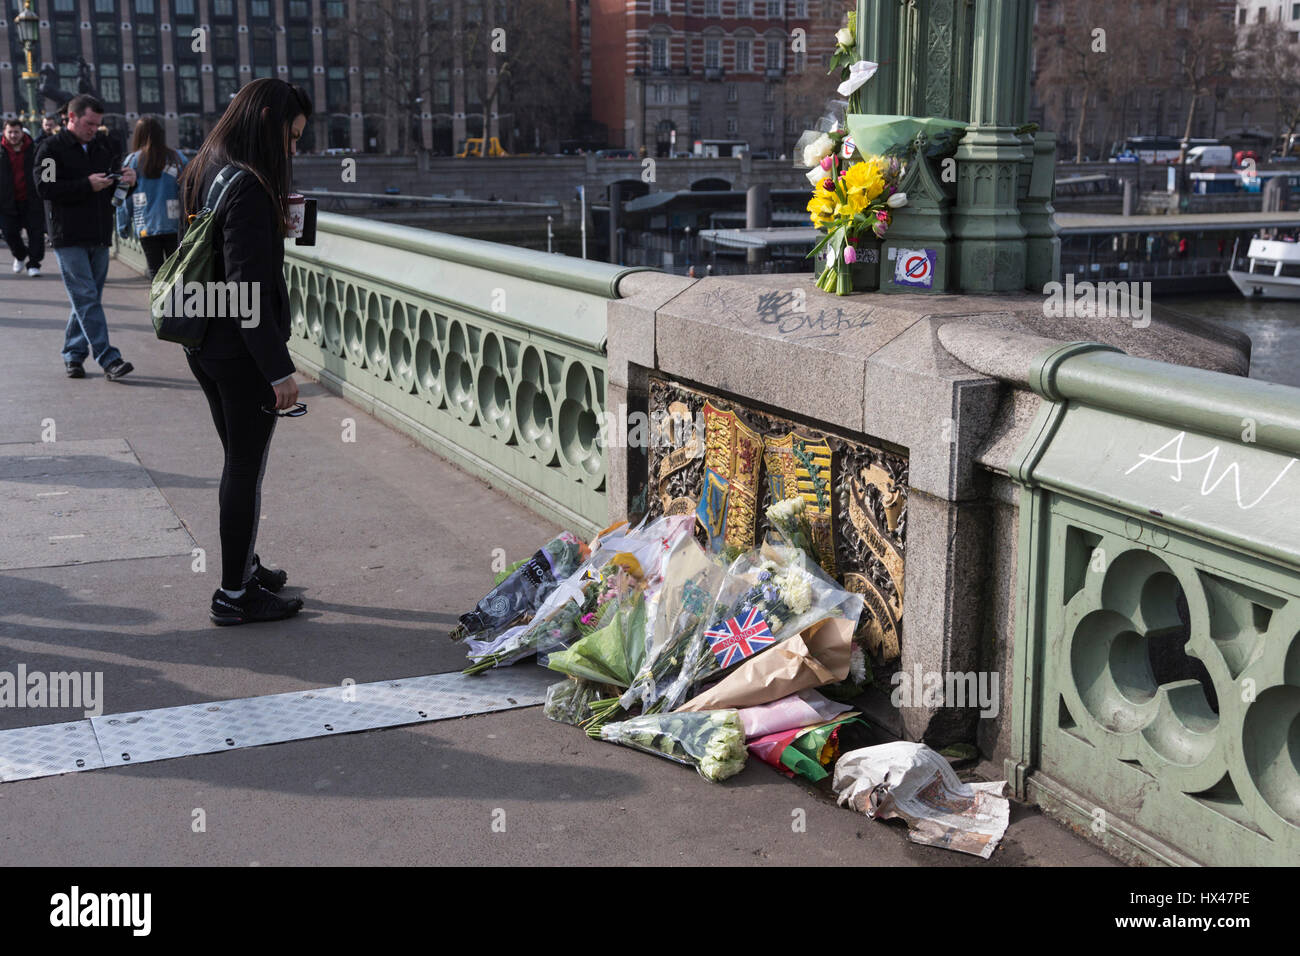 London, UK. 24th Mar, 2017. Londoners leave floral tributes to the victims of the terrorist attack on Westminster Bridge. Credit: Bettina Strenske/Alamy Live News Stock Photo